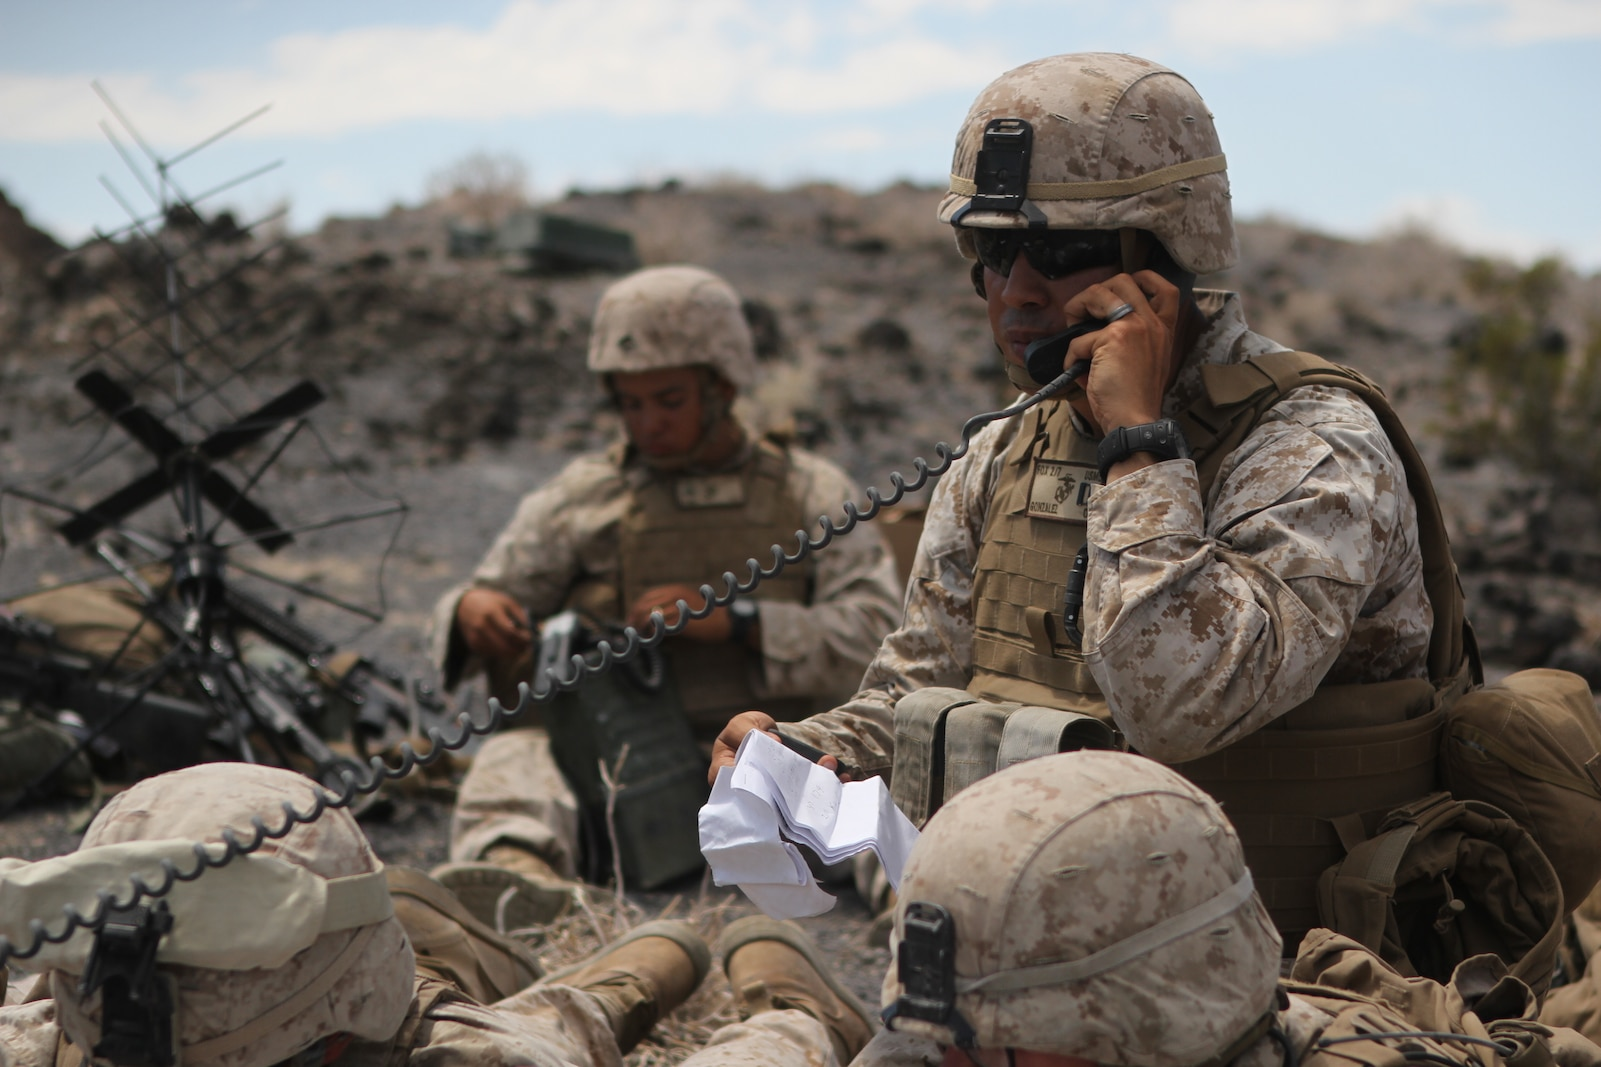 Captain Javier Gonzalez, an infantry officer with Company F, 2nd Battalion, 7th Marine Regiment, conducts a radio operations check for a fire support operation during Large Scale Exercise 2014 aboard Marine Corps Air Ground Combat Center Twentynine Palms, Calif., Aug. 9-10, 2014. Fire support drills are conducted by a fire team that calls for attacks on distant targets through the use of air support, mortars and artillery. LSE-14 is a bilateral training exercise being conducted by 1st Marine Expeditionary Brigade to build U.S. and Canadian forces' joint capabilities through live, simulated, and constructive military training activities. (U.S. Marine Corps photo by Lance Cpl. Angel Serna/Released)